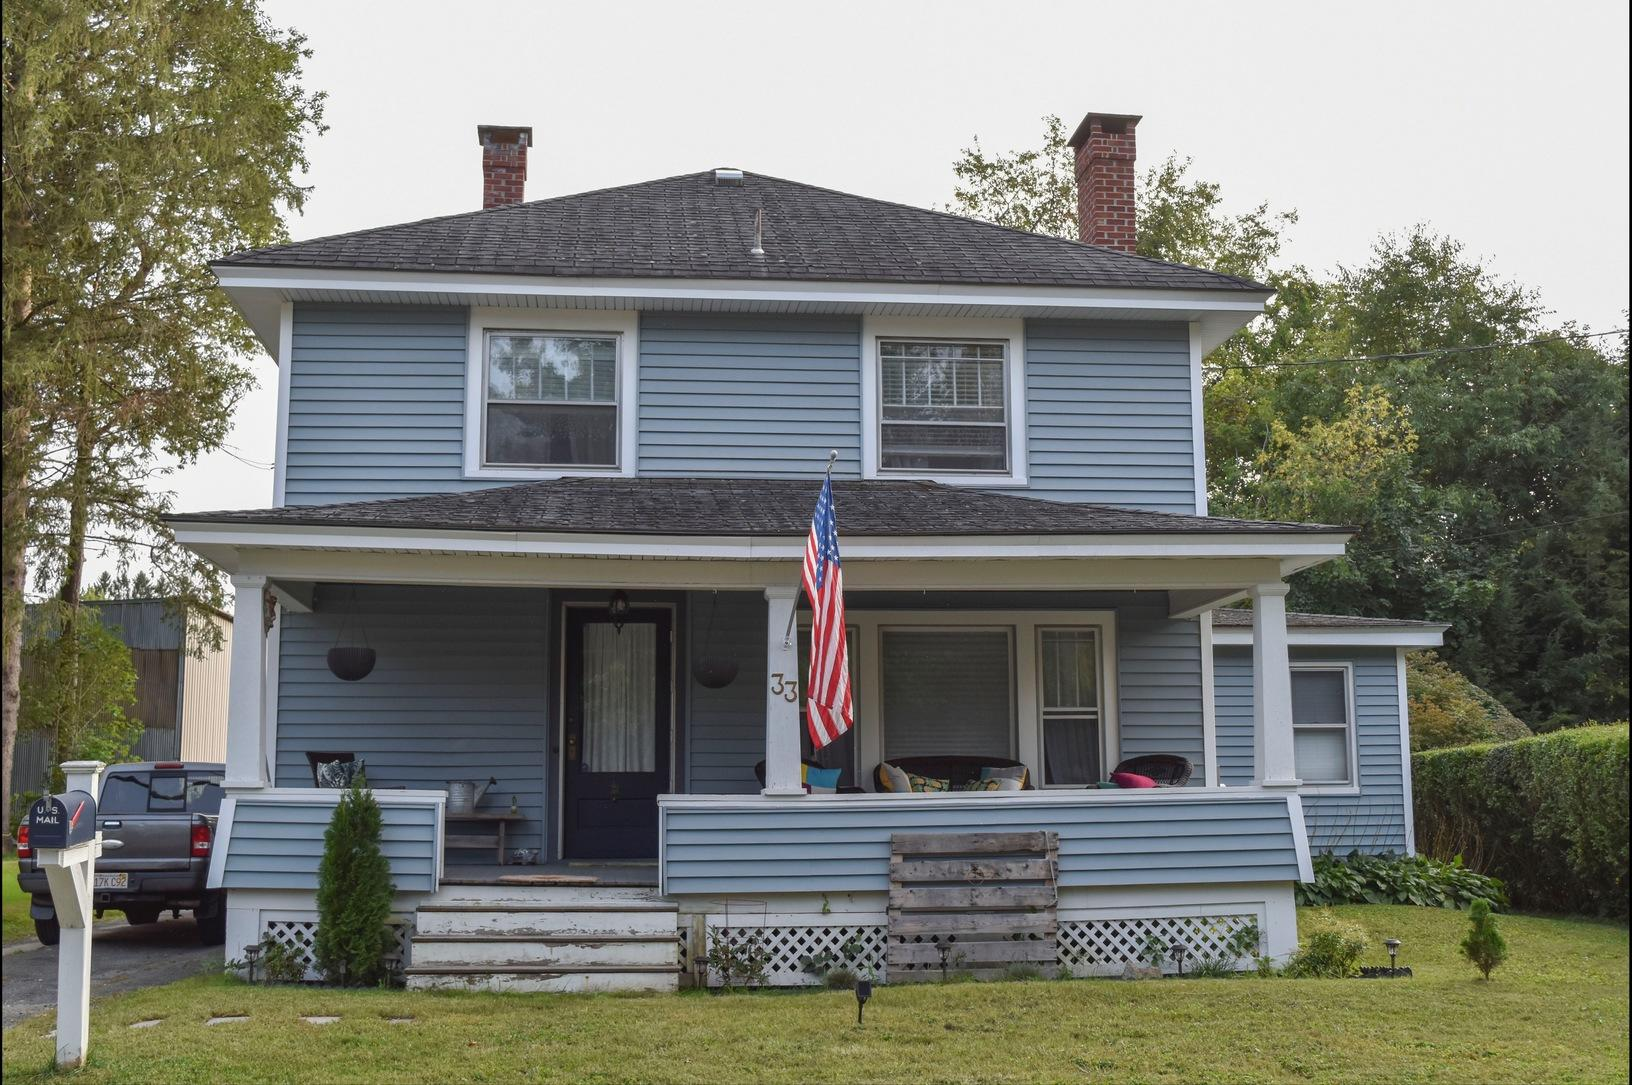 Pittsfield, MA Roof Replacement IKO Dynasty Castle Grey Shingles - Before Photo